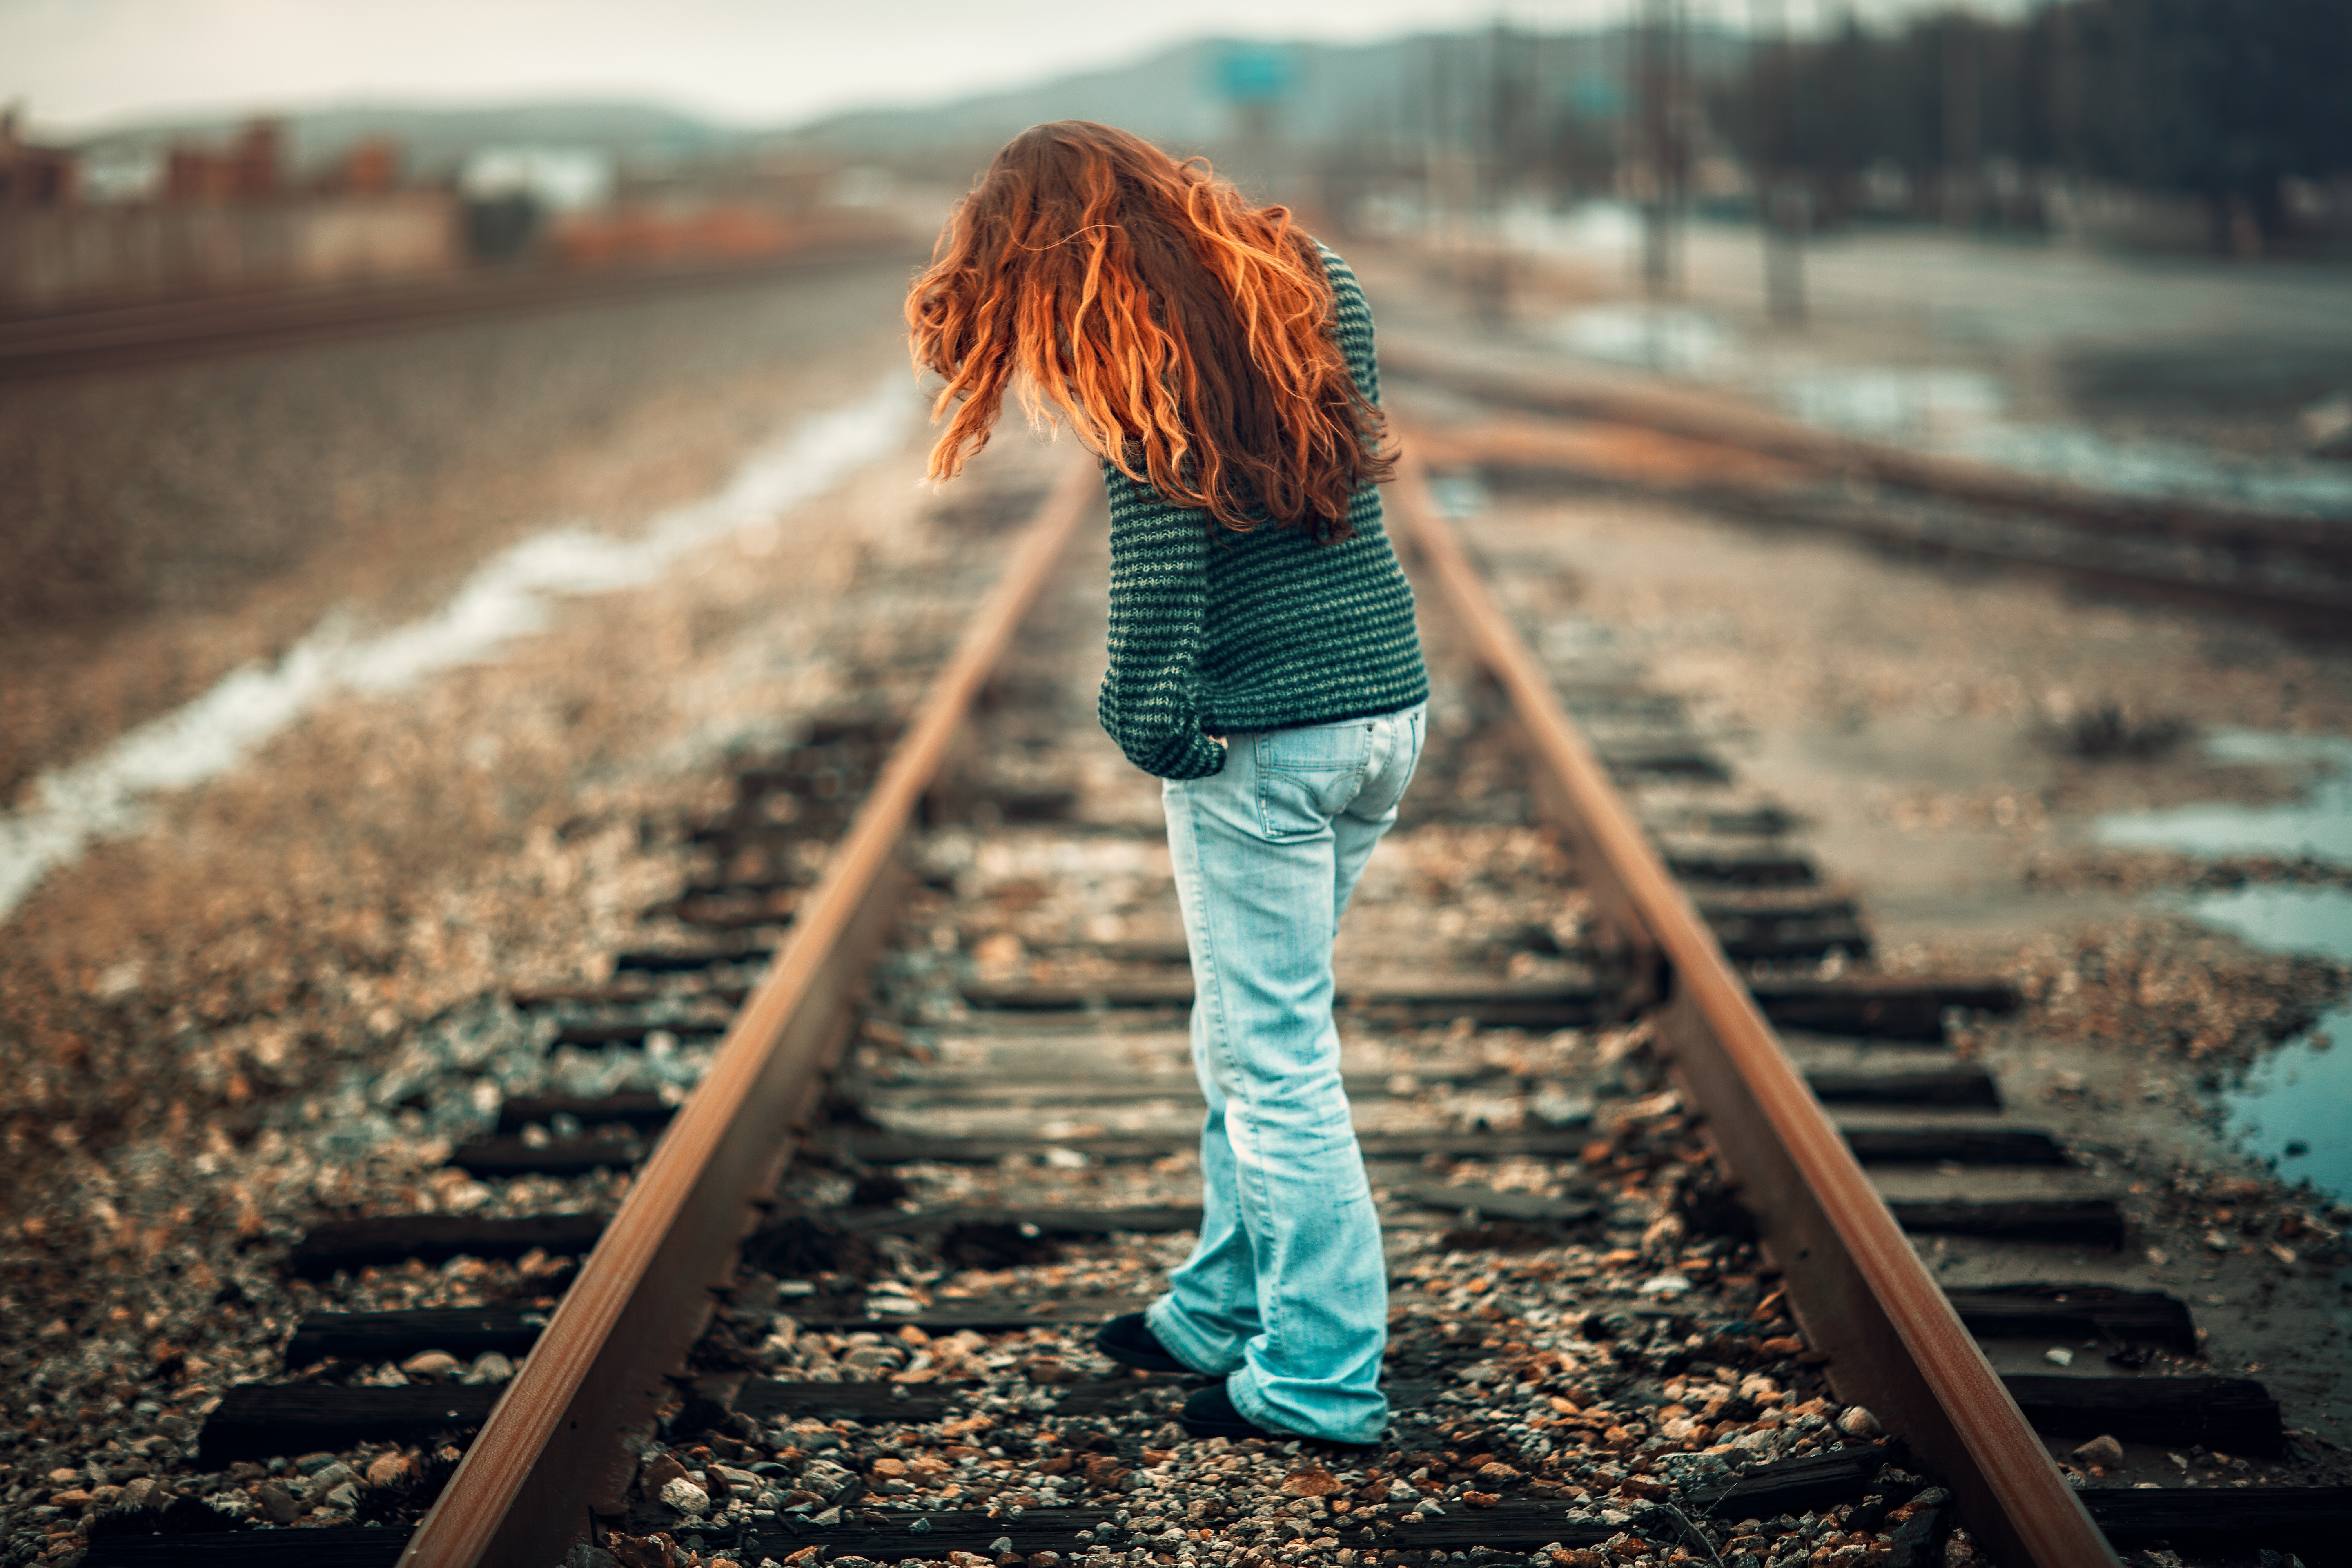 Red Haired Woman sad about her relationships, standing on the train tracks.